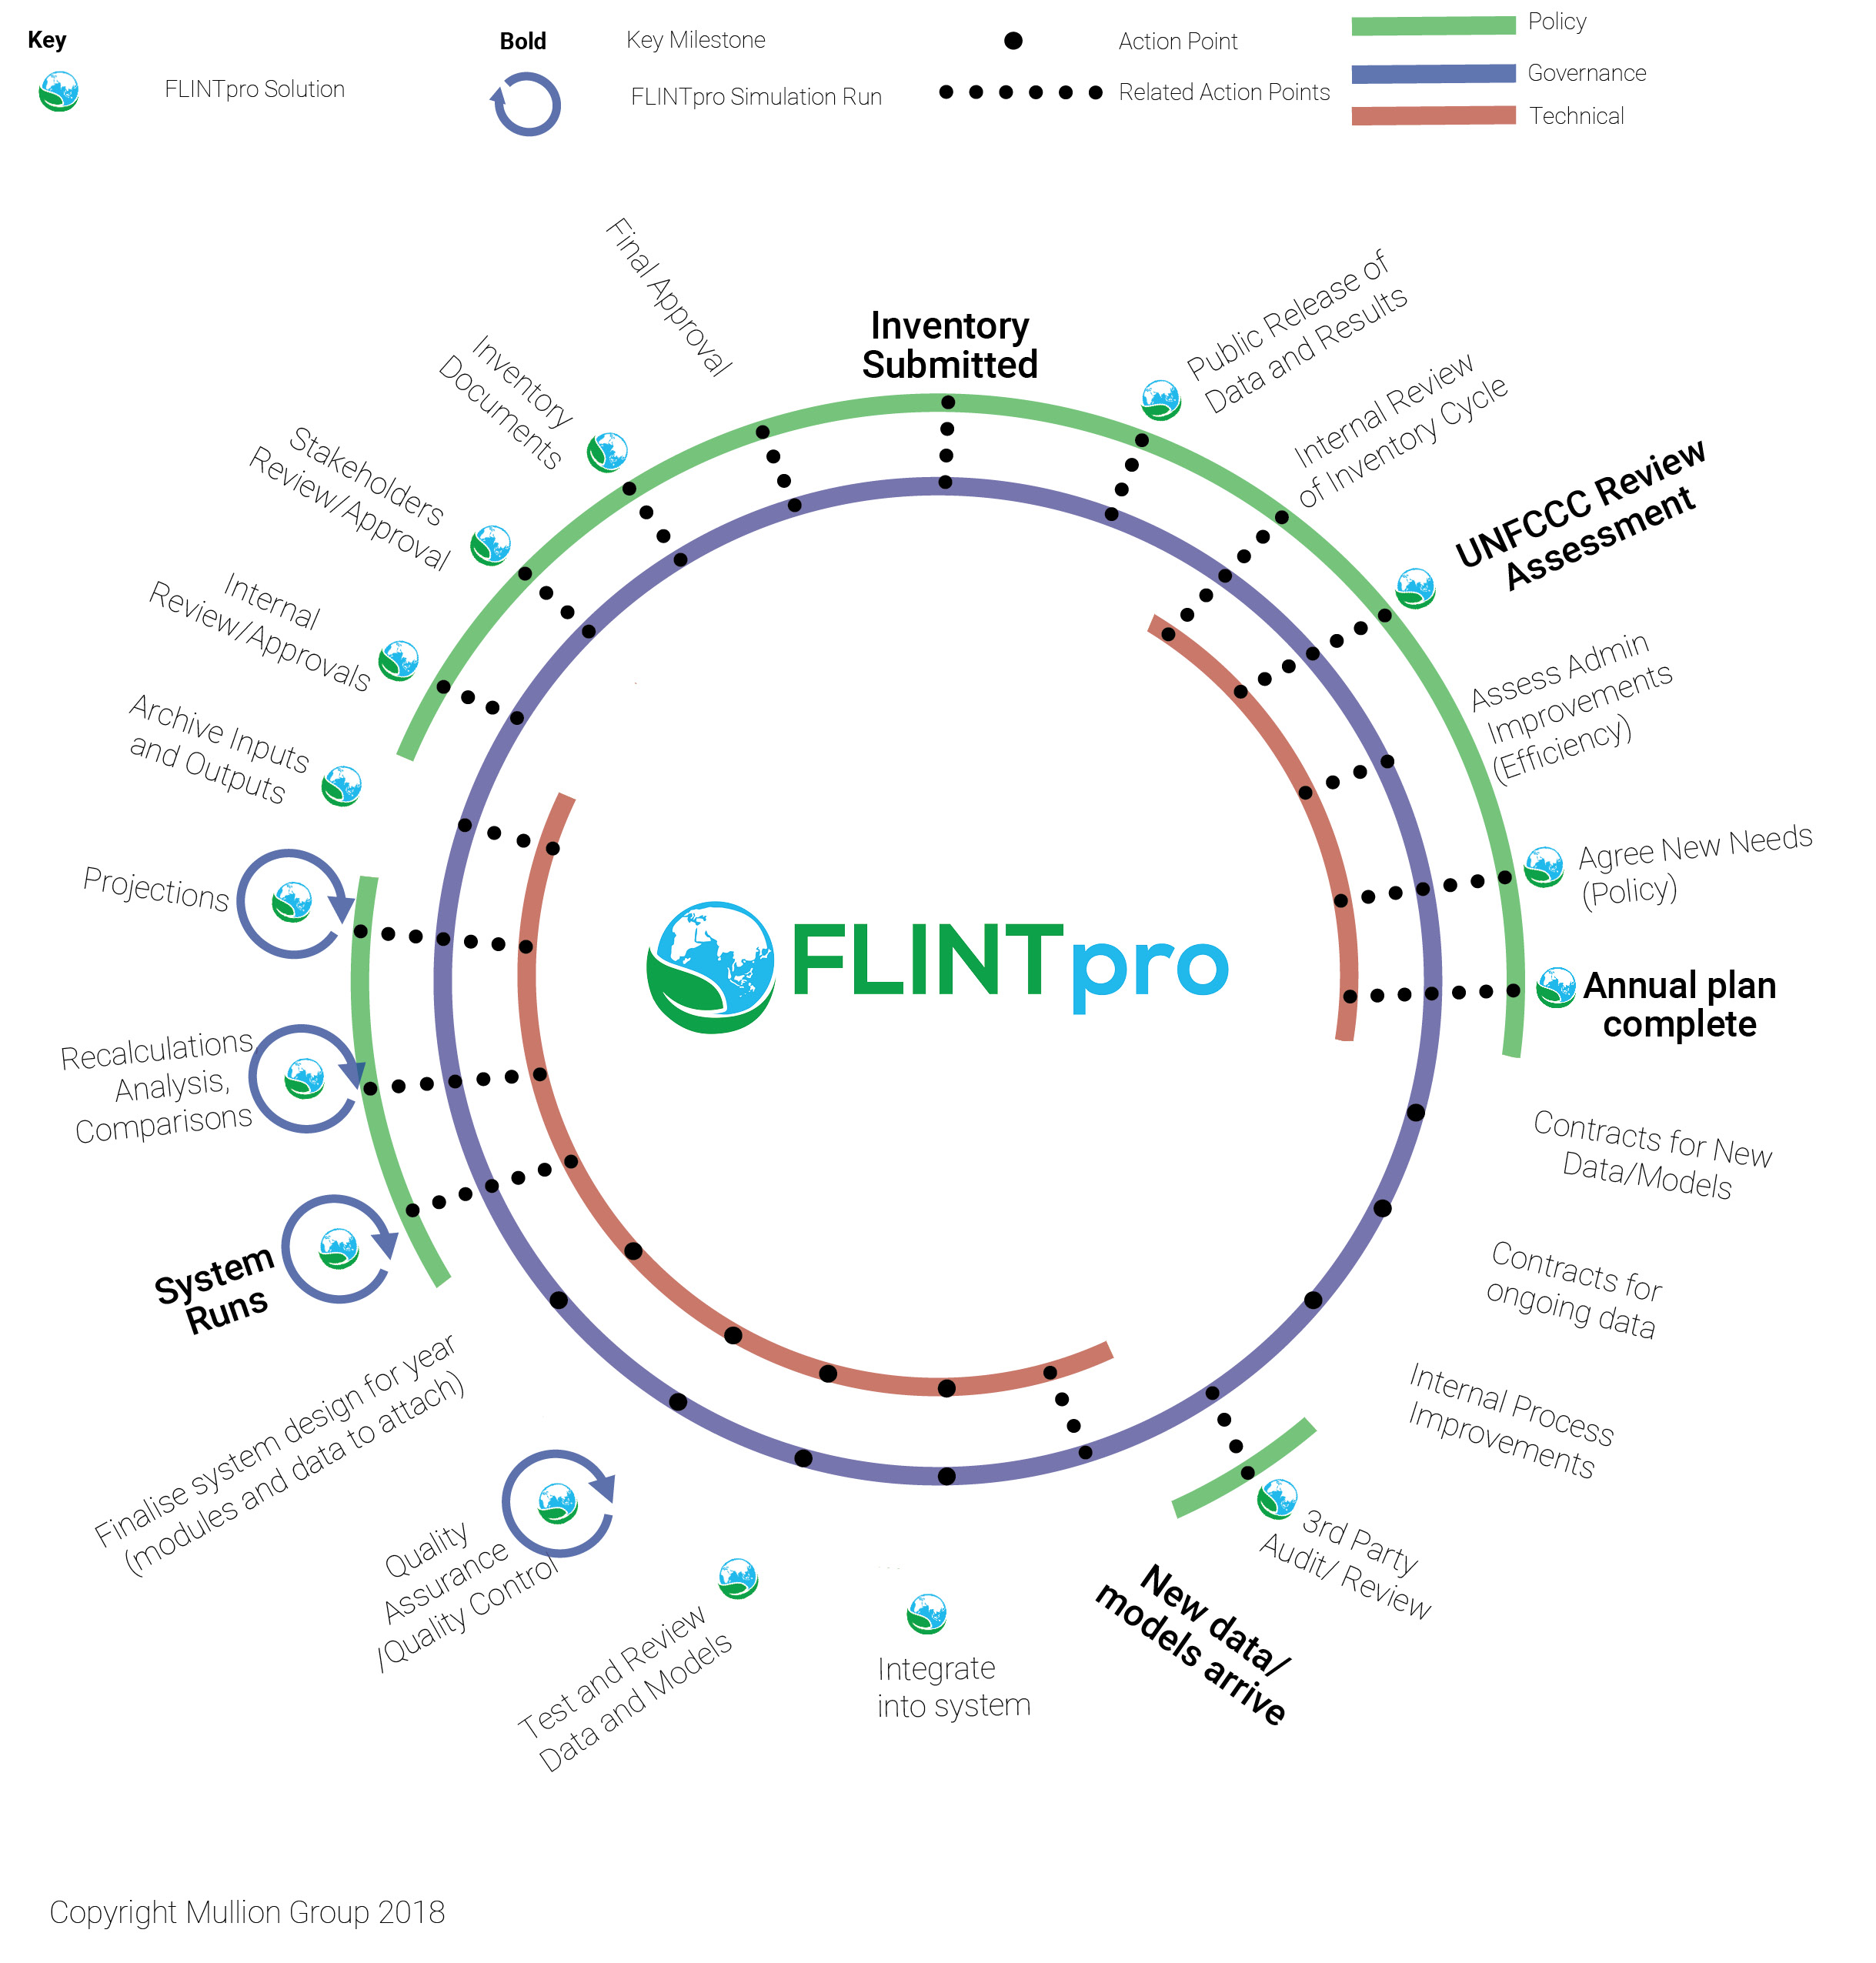 Image 6: FLINTpro provides value throughout the MRV cycle. FLINTpro allows users to quickly test new data, and complete the tasks required to meet the key milestones of an MRV system.